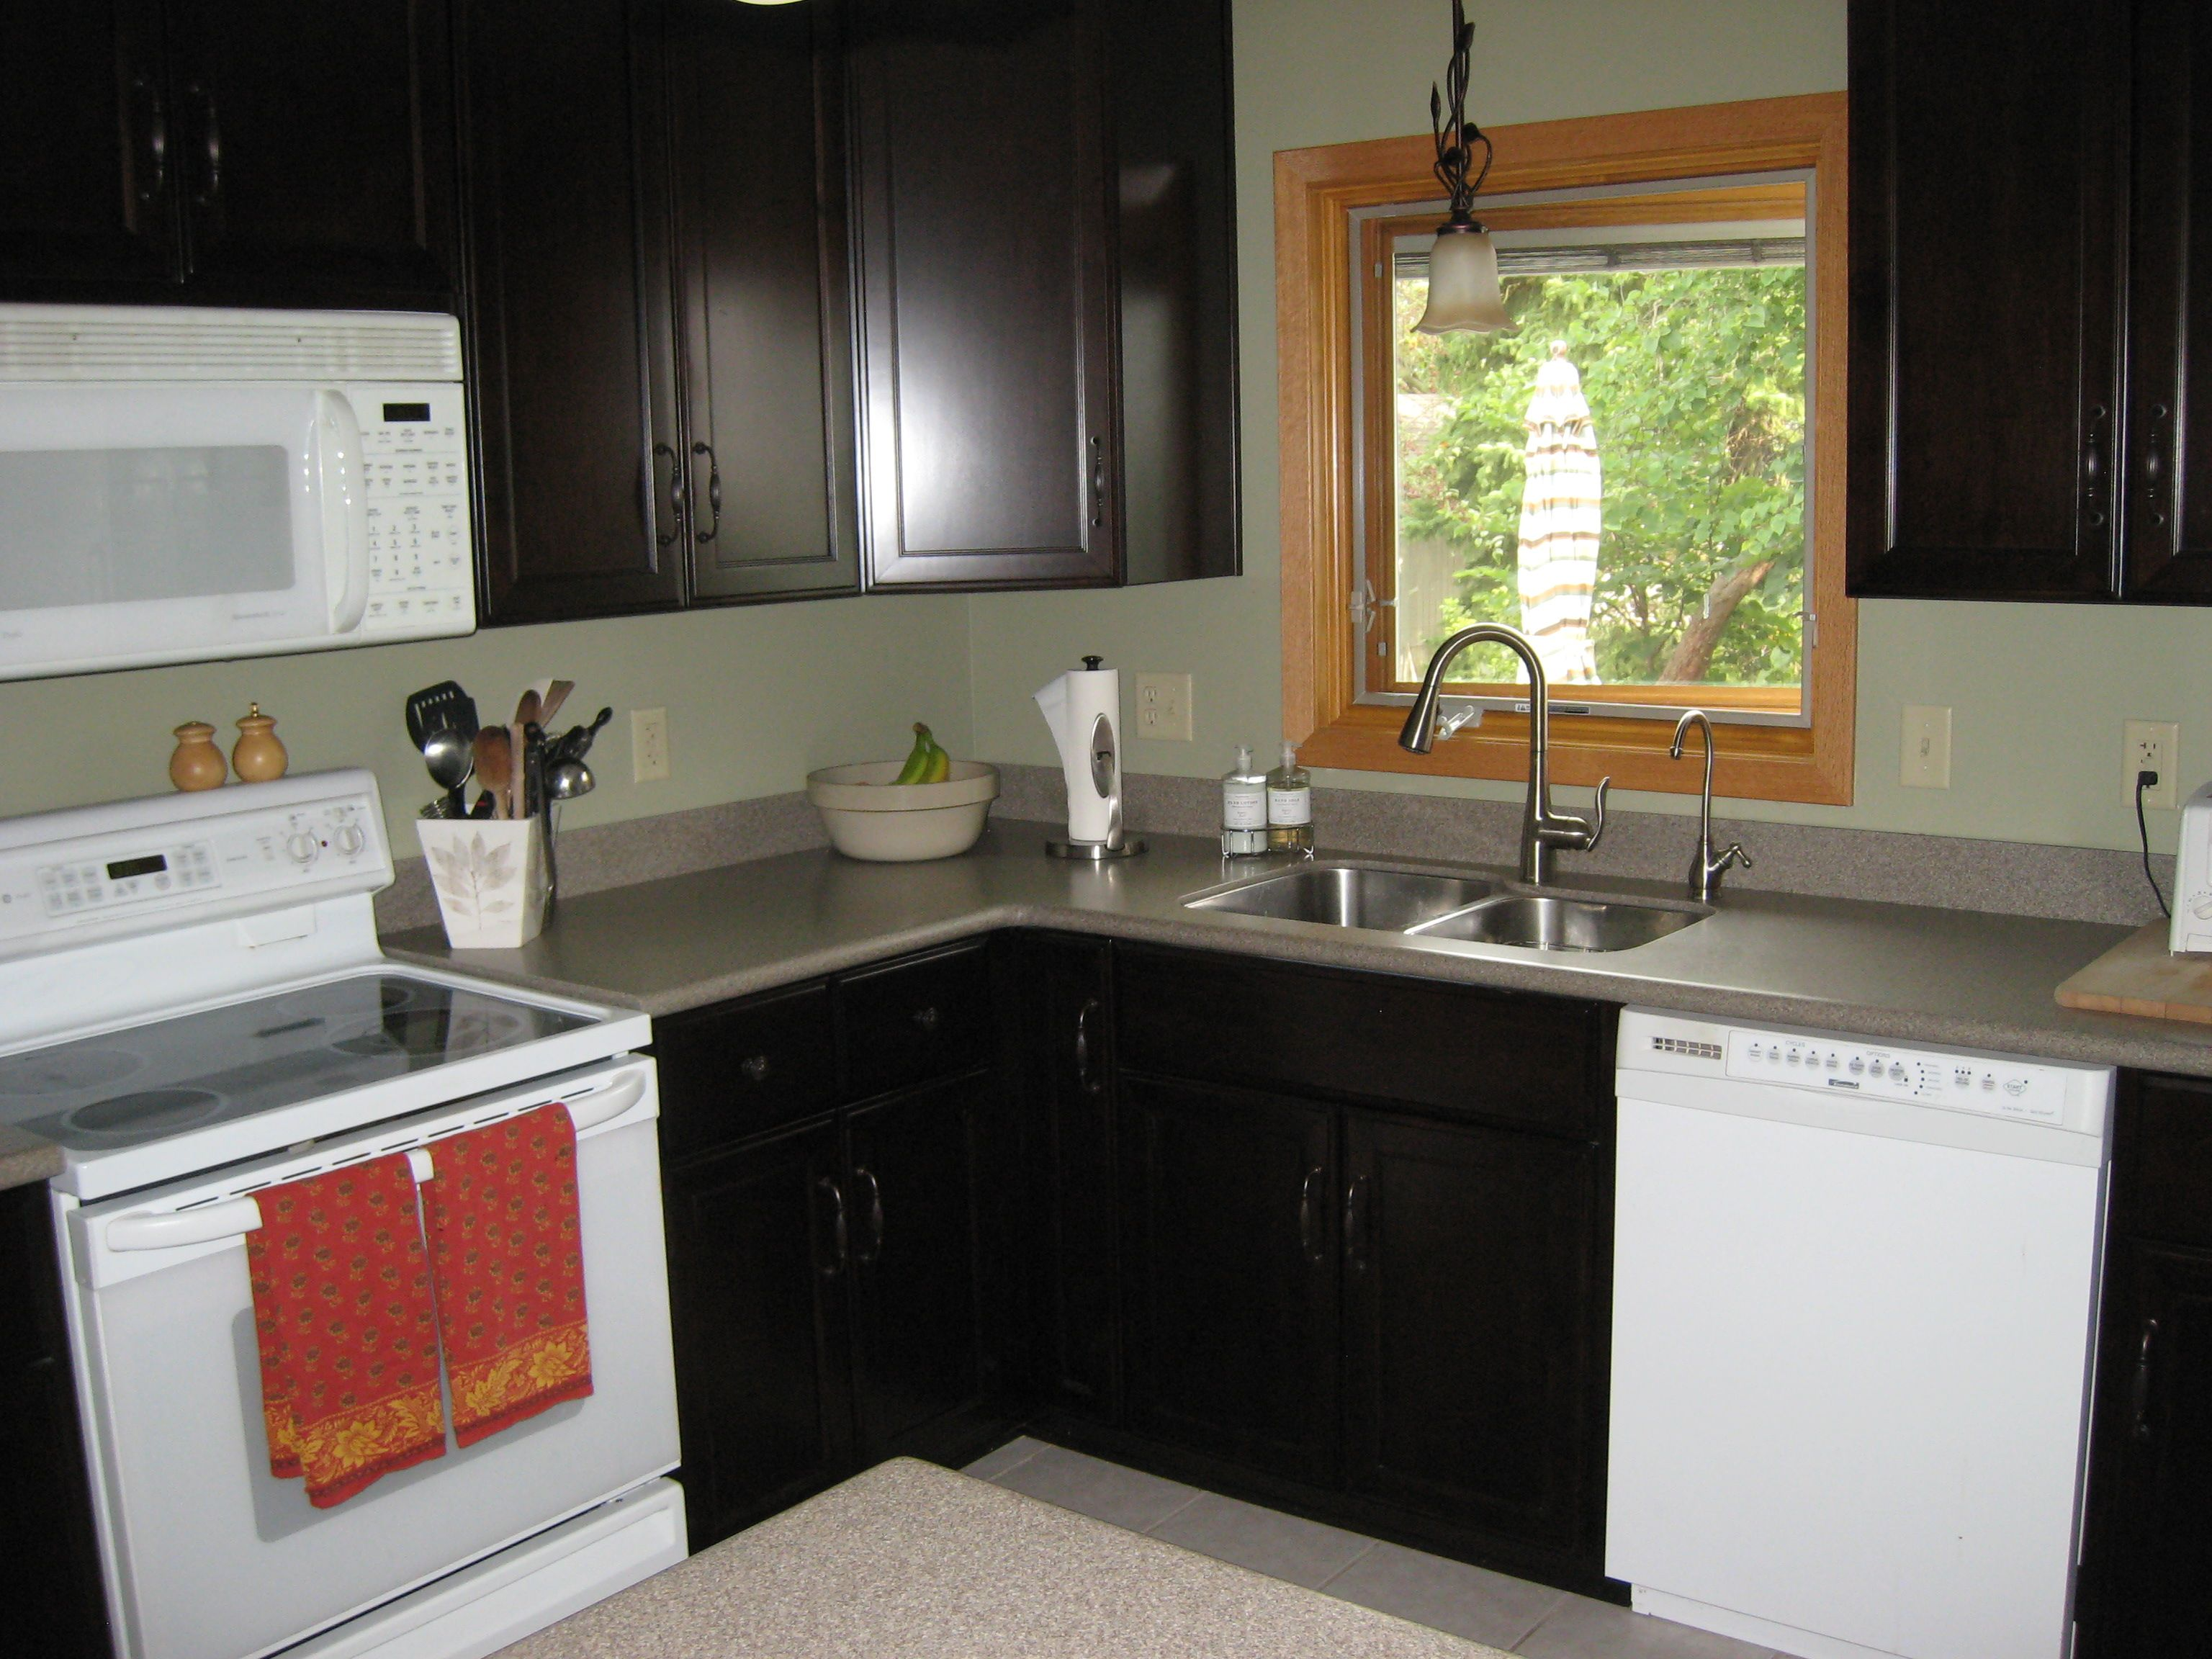 Small L Shaped Kitchen Like Yours With Dark Cabinets And White Appliances